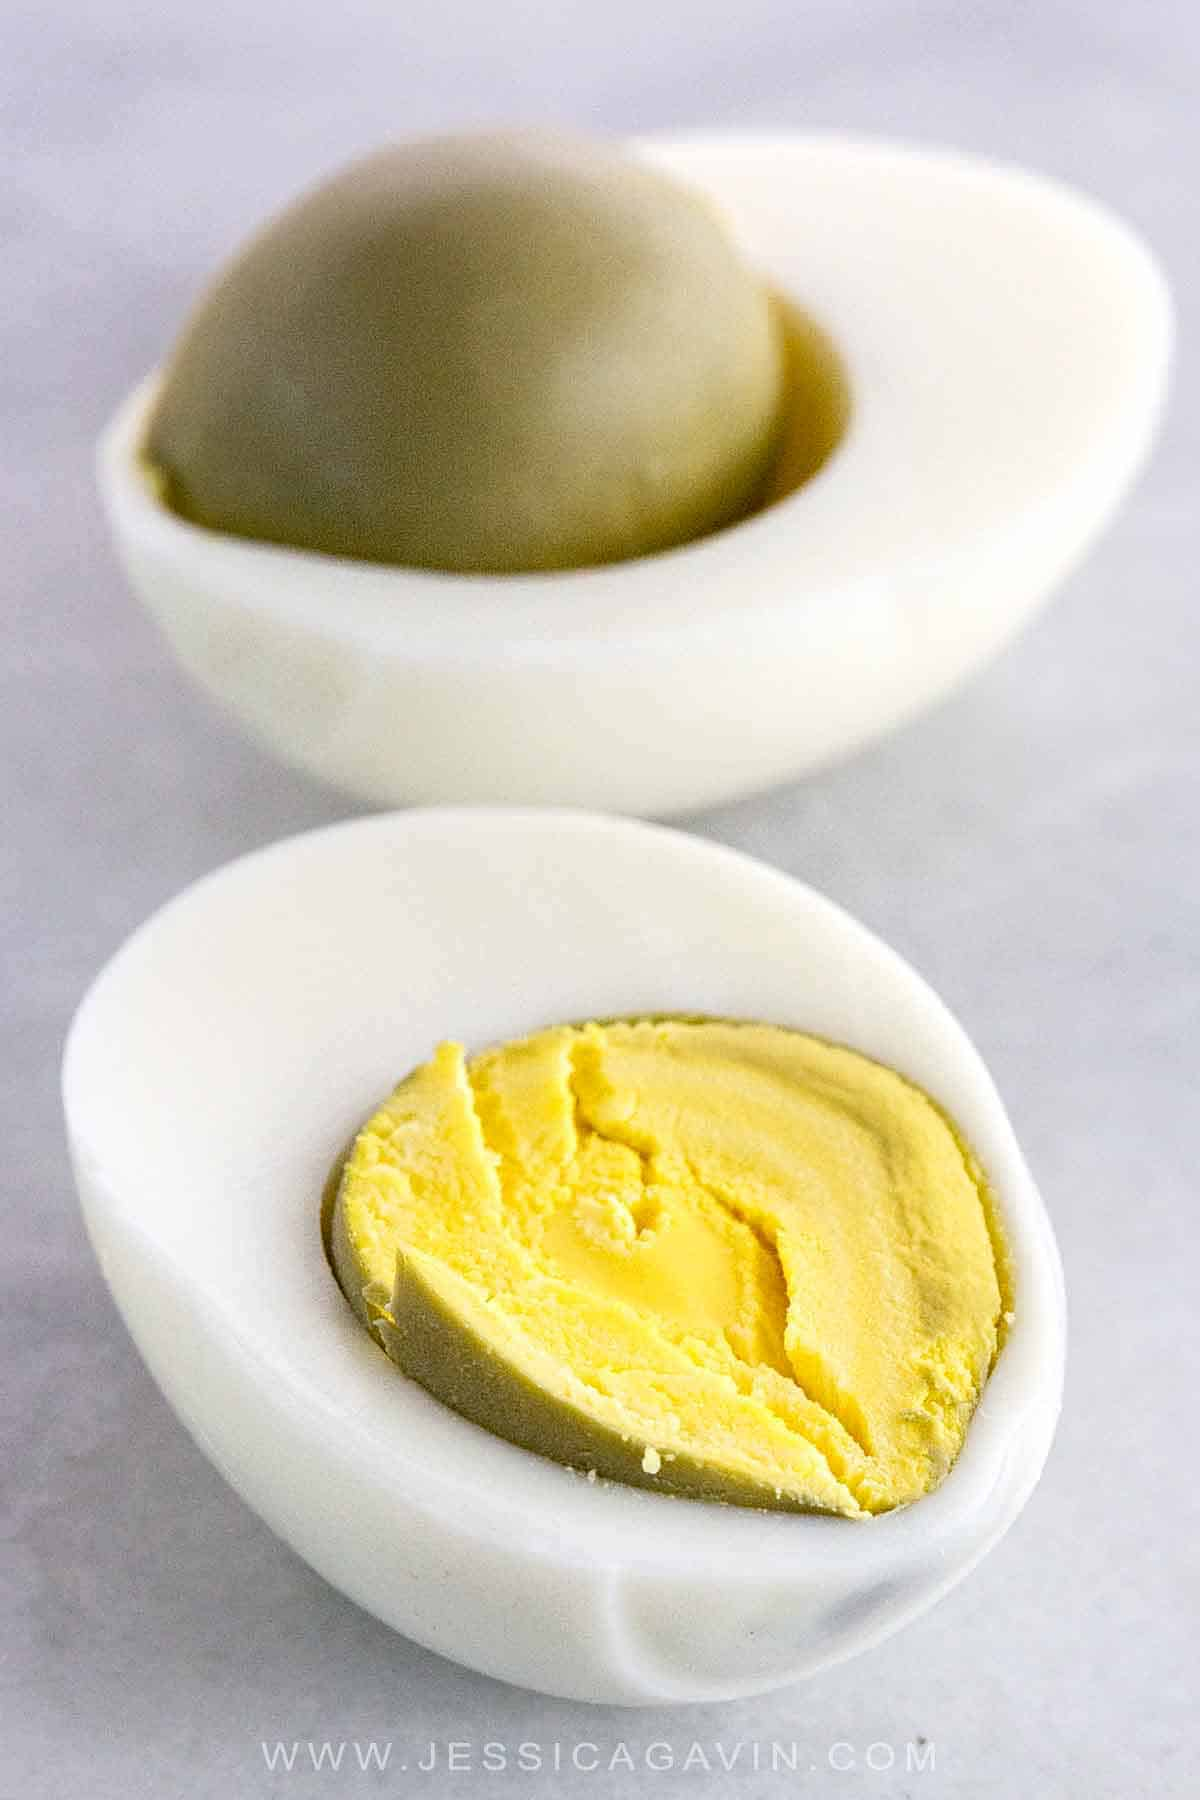 Perfect hard-boiled eggs have tender whites and opaque yellow yolks, but cooked too long and the middle turns green. Learn why this color change happens and why there's a strong odor that follows. #eggscience #greenegg #rotteneggs